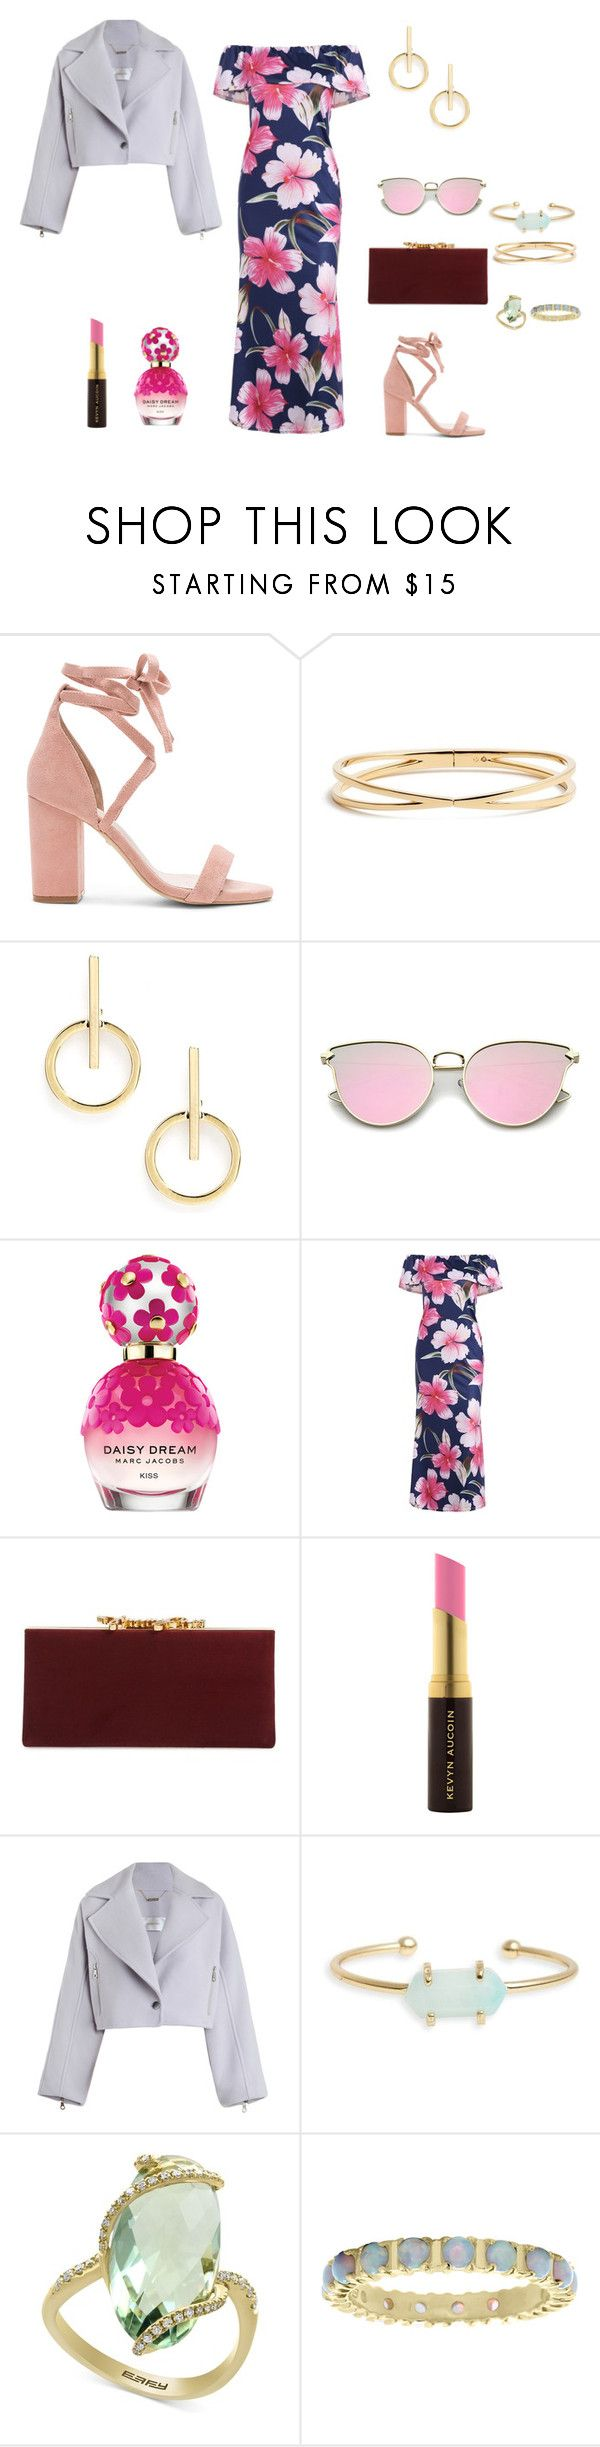 """casamiento"" by ananleke on Polyvore featuring moda, Raye, Nadri, Sole Society, Marc Jacobs, Jimmy Choo, Kevyn Aucoin, Zimmermann, Treasure & Bond y Effy Jewelry"